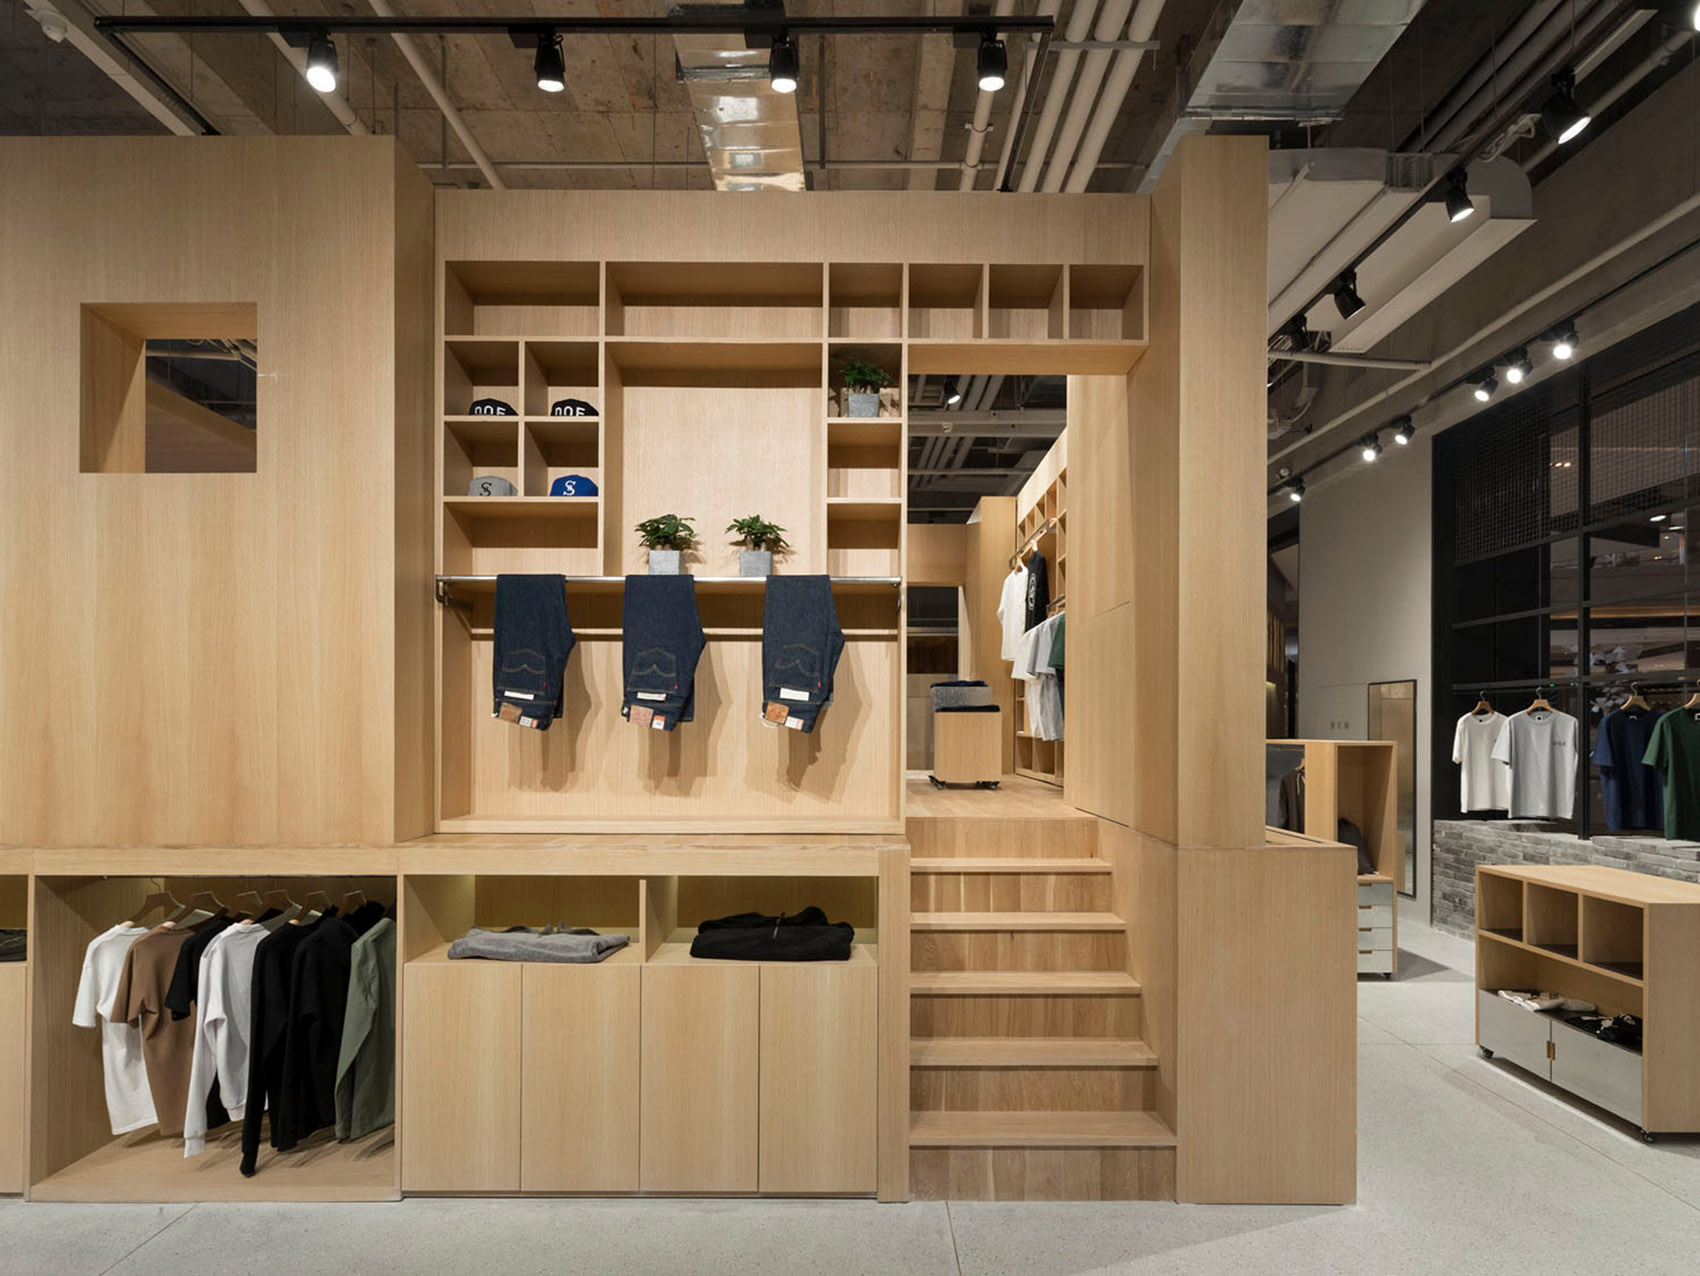 014-doe-store-in-shanghai-by-b-l-u-e-architecture-studio.jpg